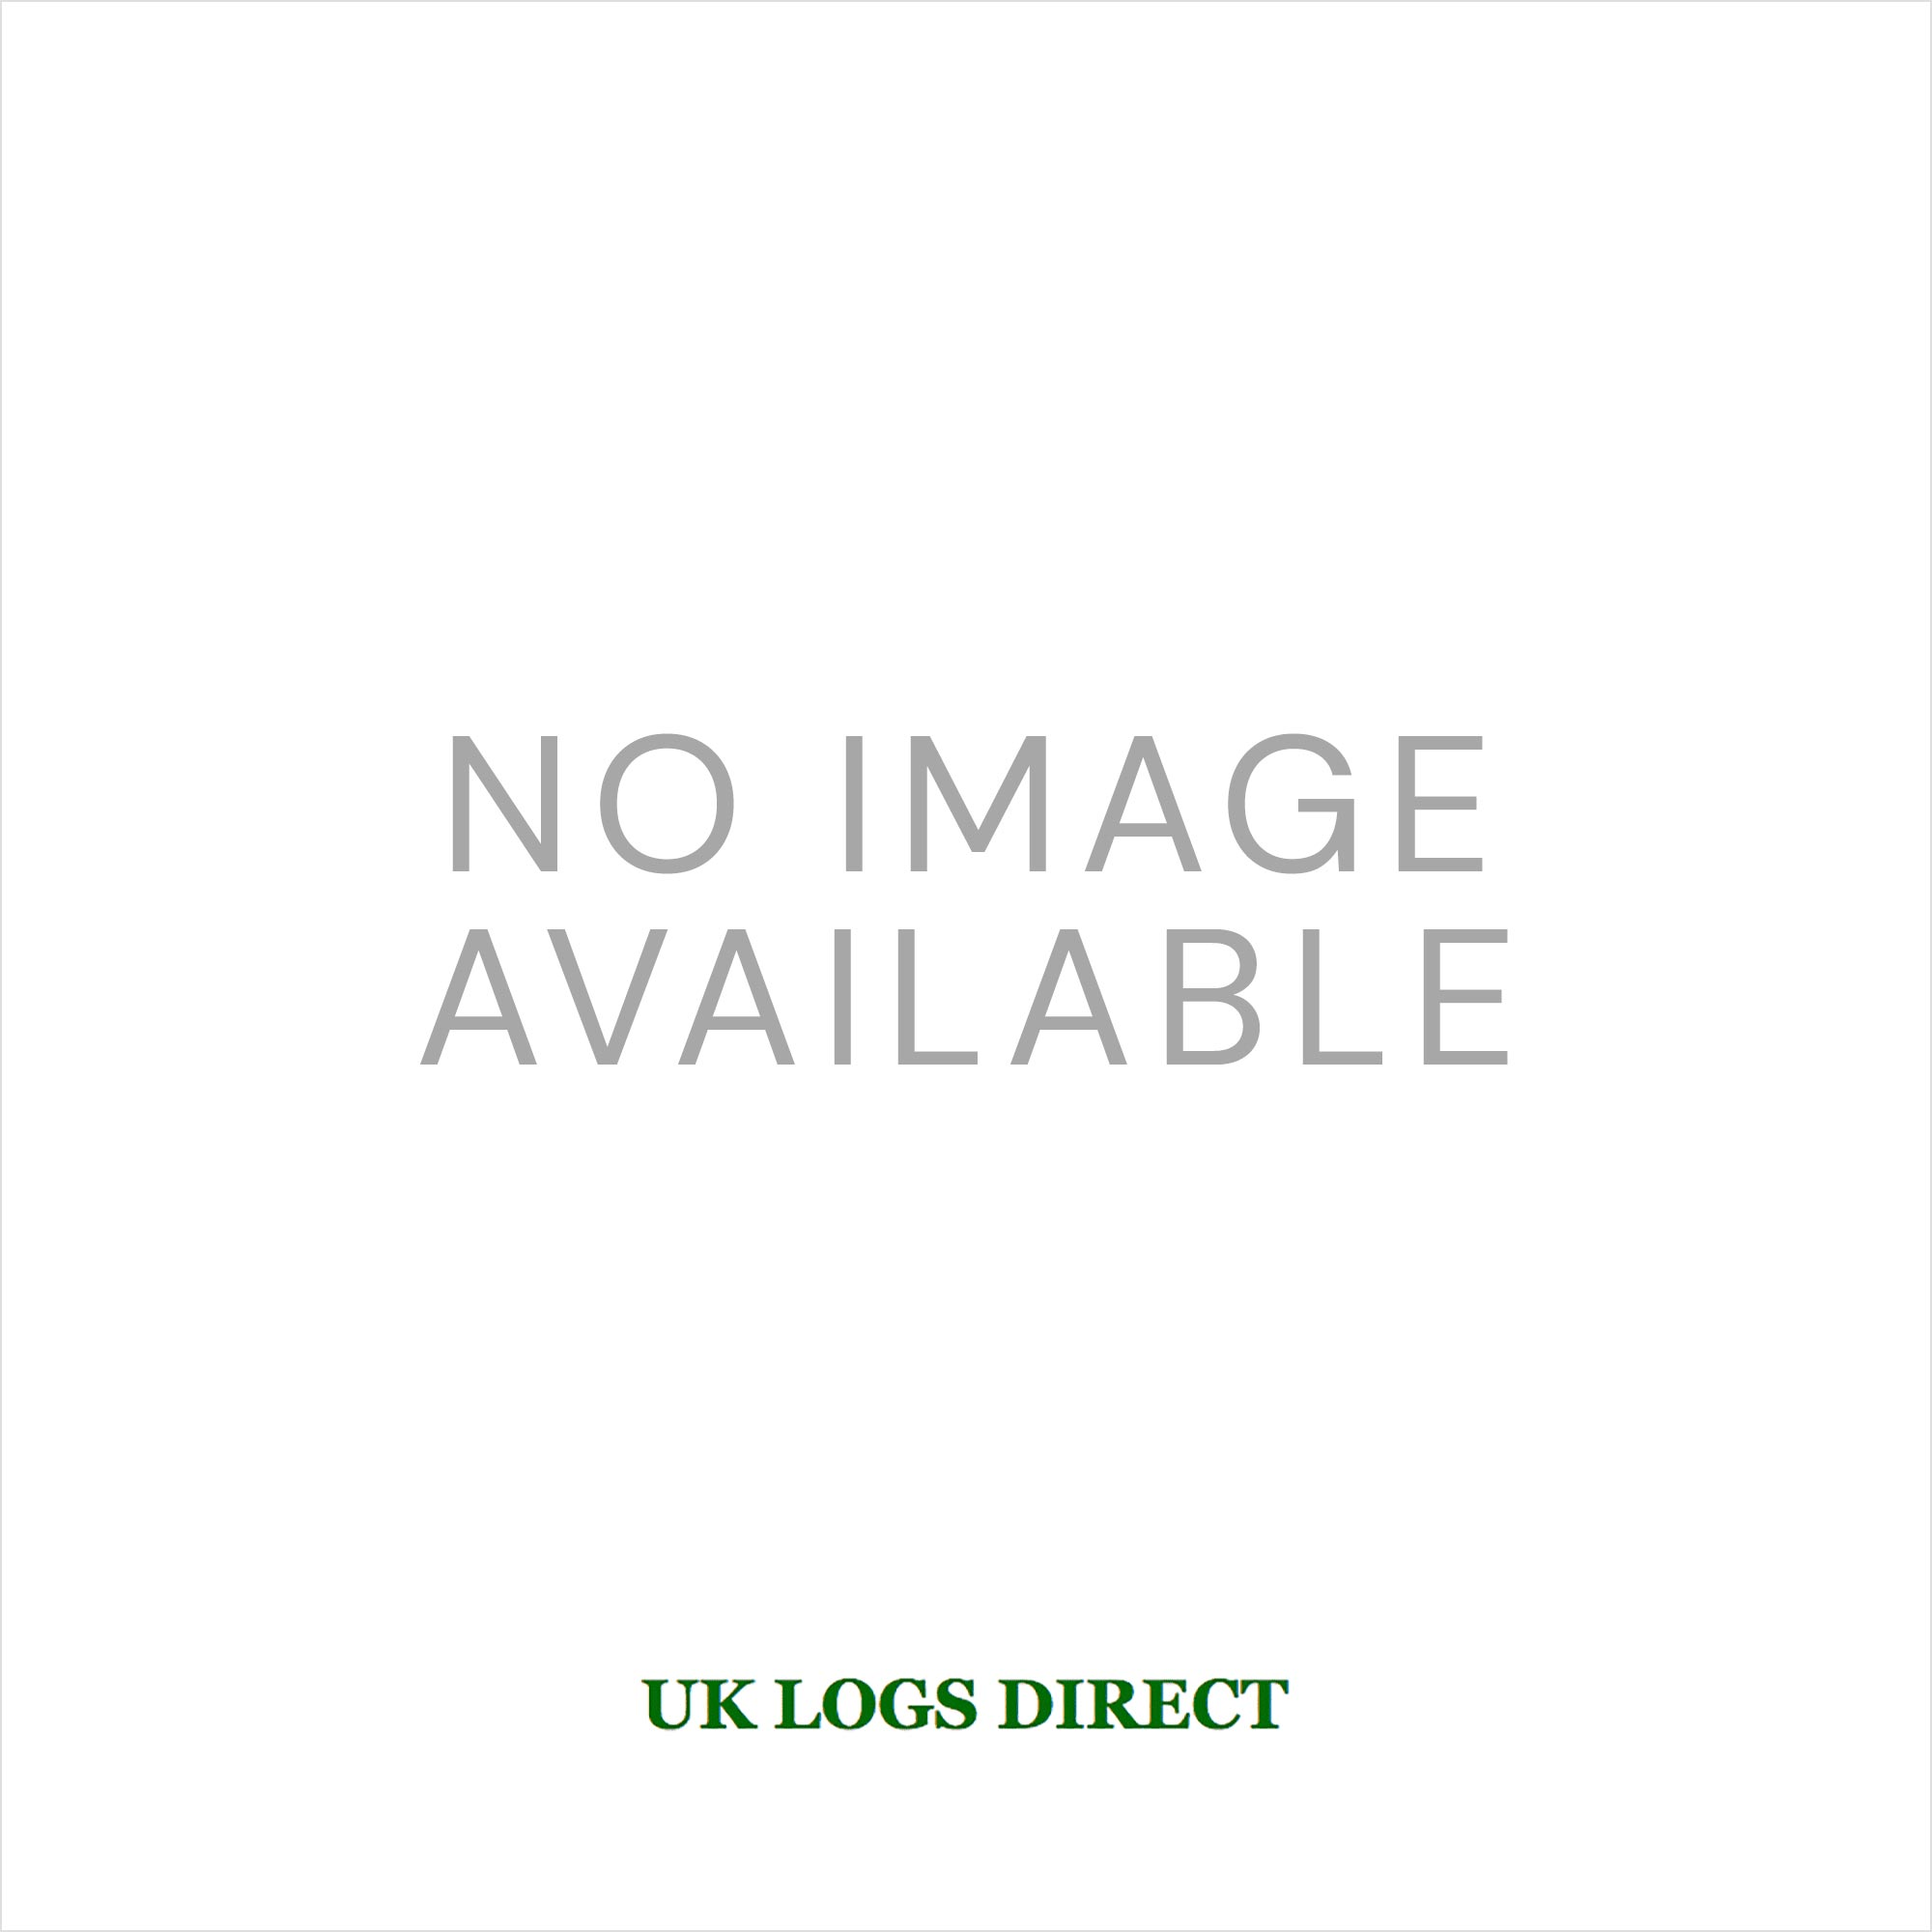 Kiln Dried ASH Logs In Three Vented Barrow Bags Perfect For Restricted Access